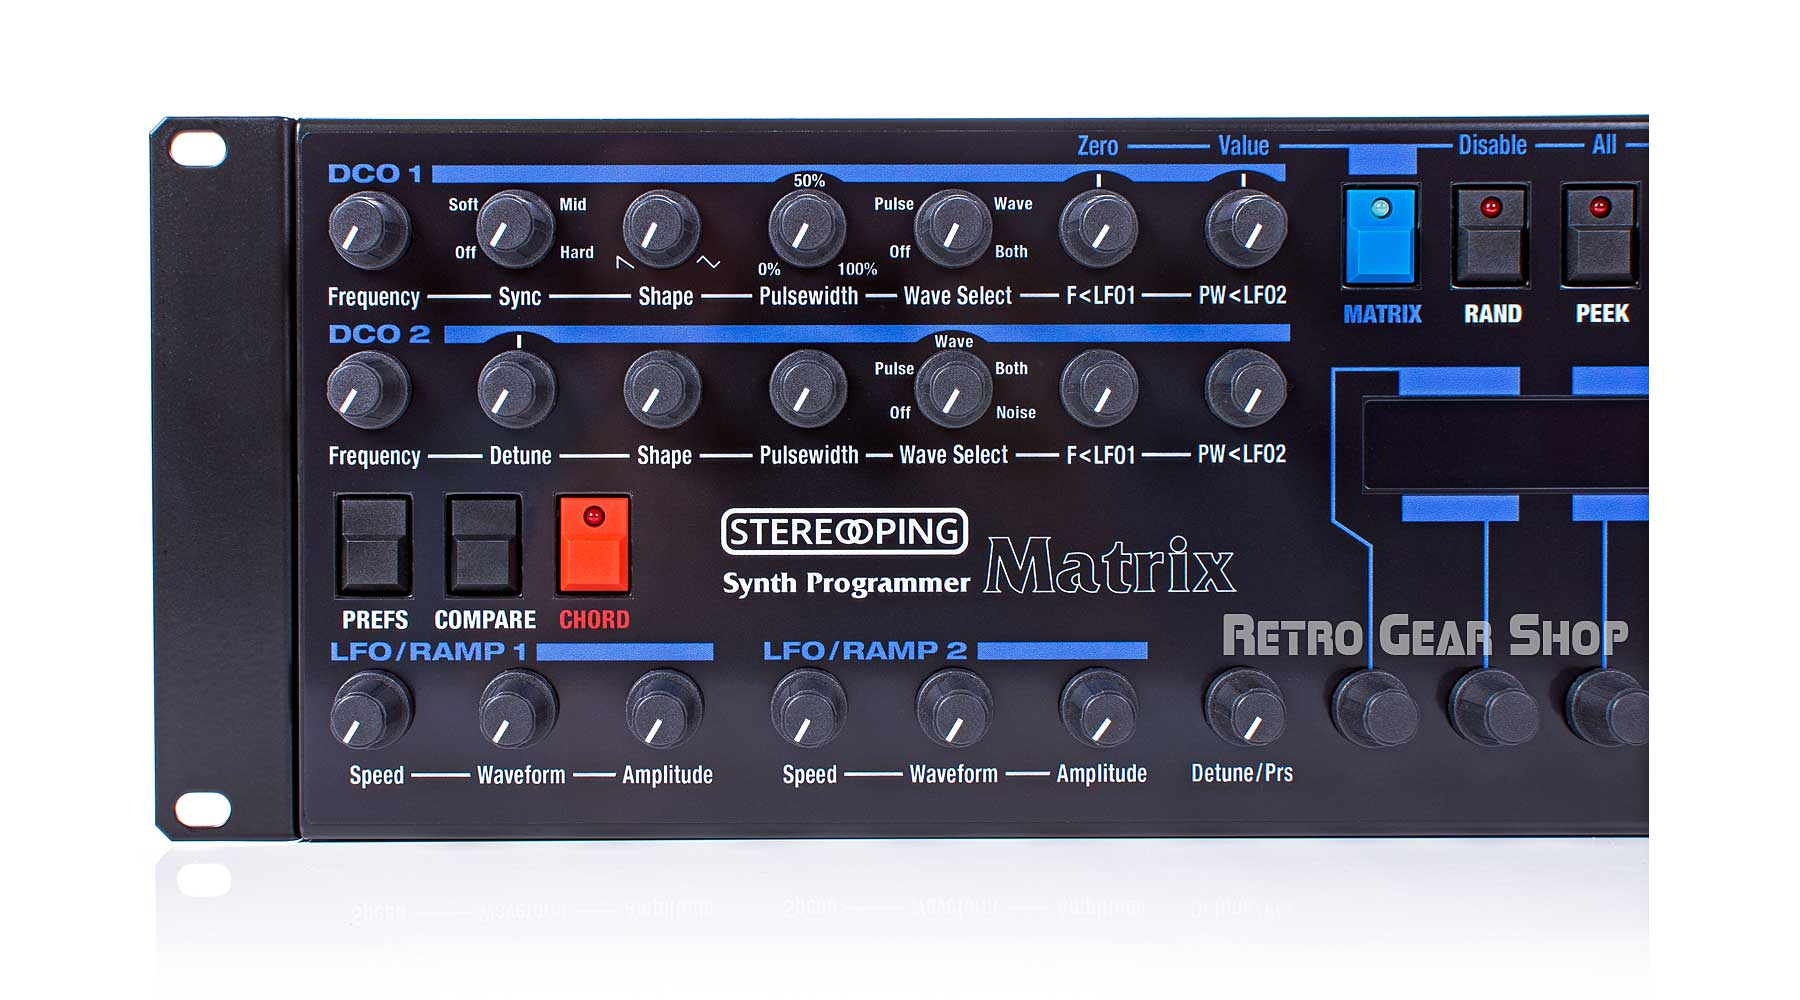 Stereoping Programmer Oberheim Matrix Top Left